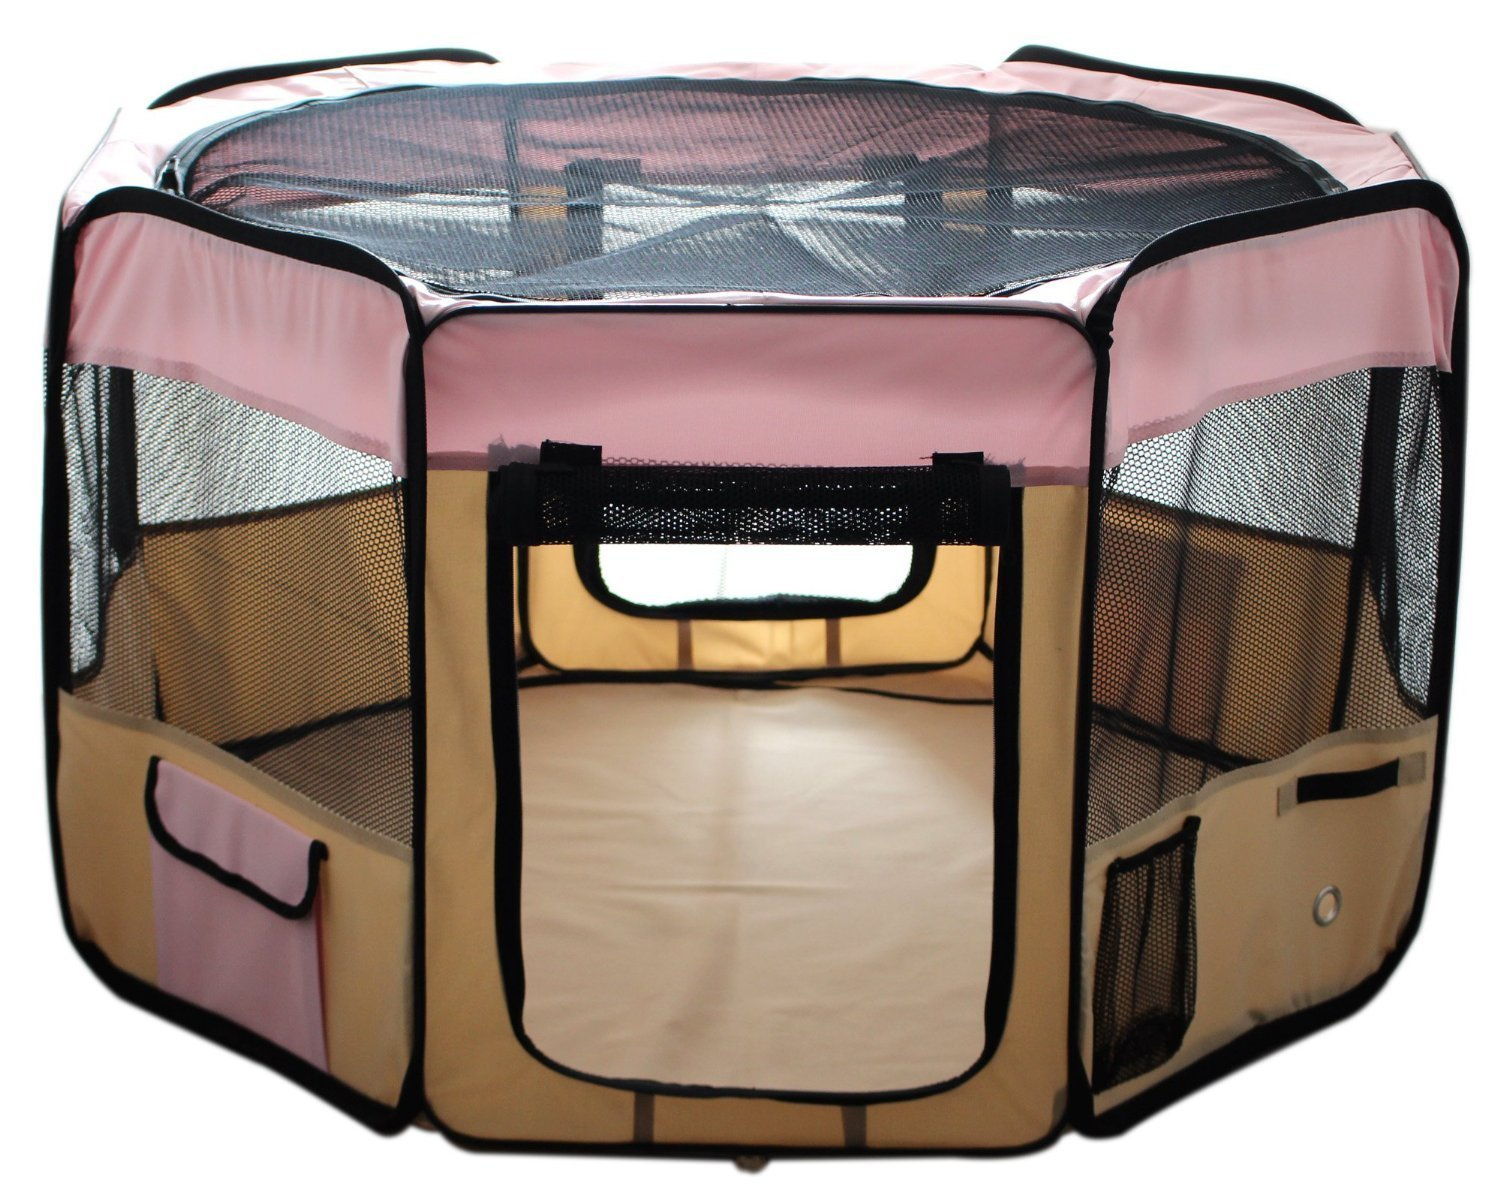 ESK Collection 48'' Pet Puppy Dog Playpen Exercise Pen Kennel 600d Oxford Cloth Pink